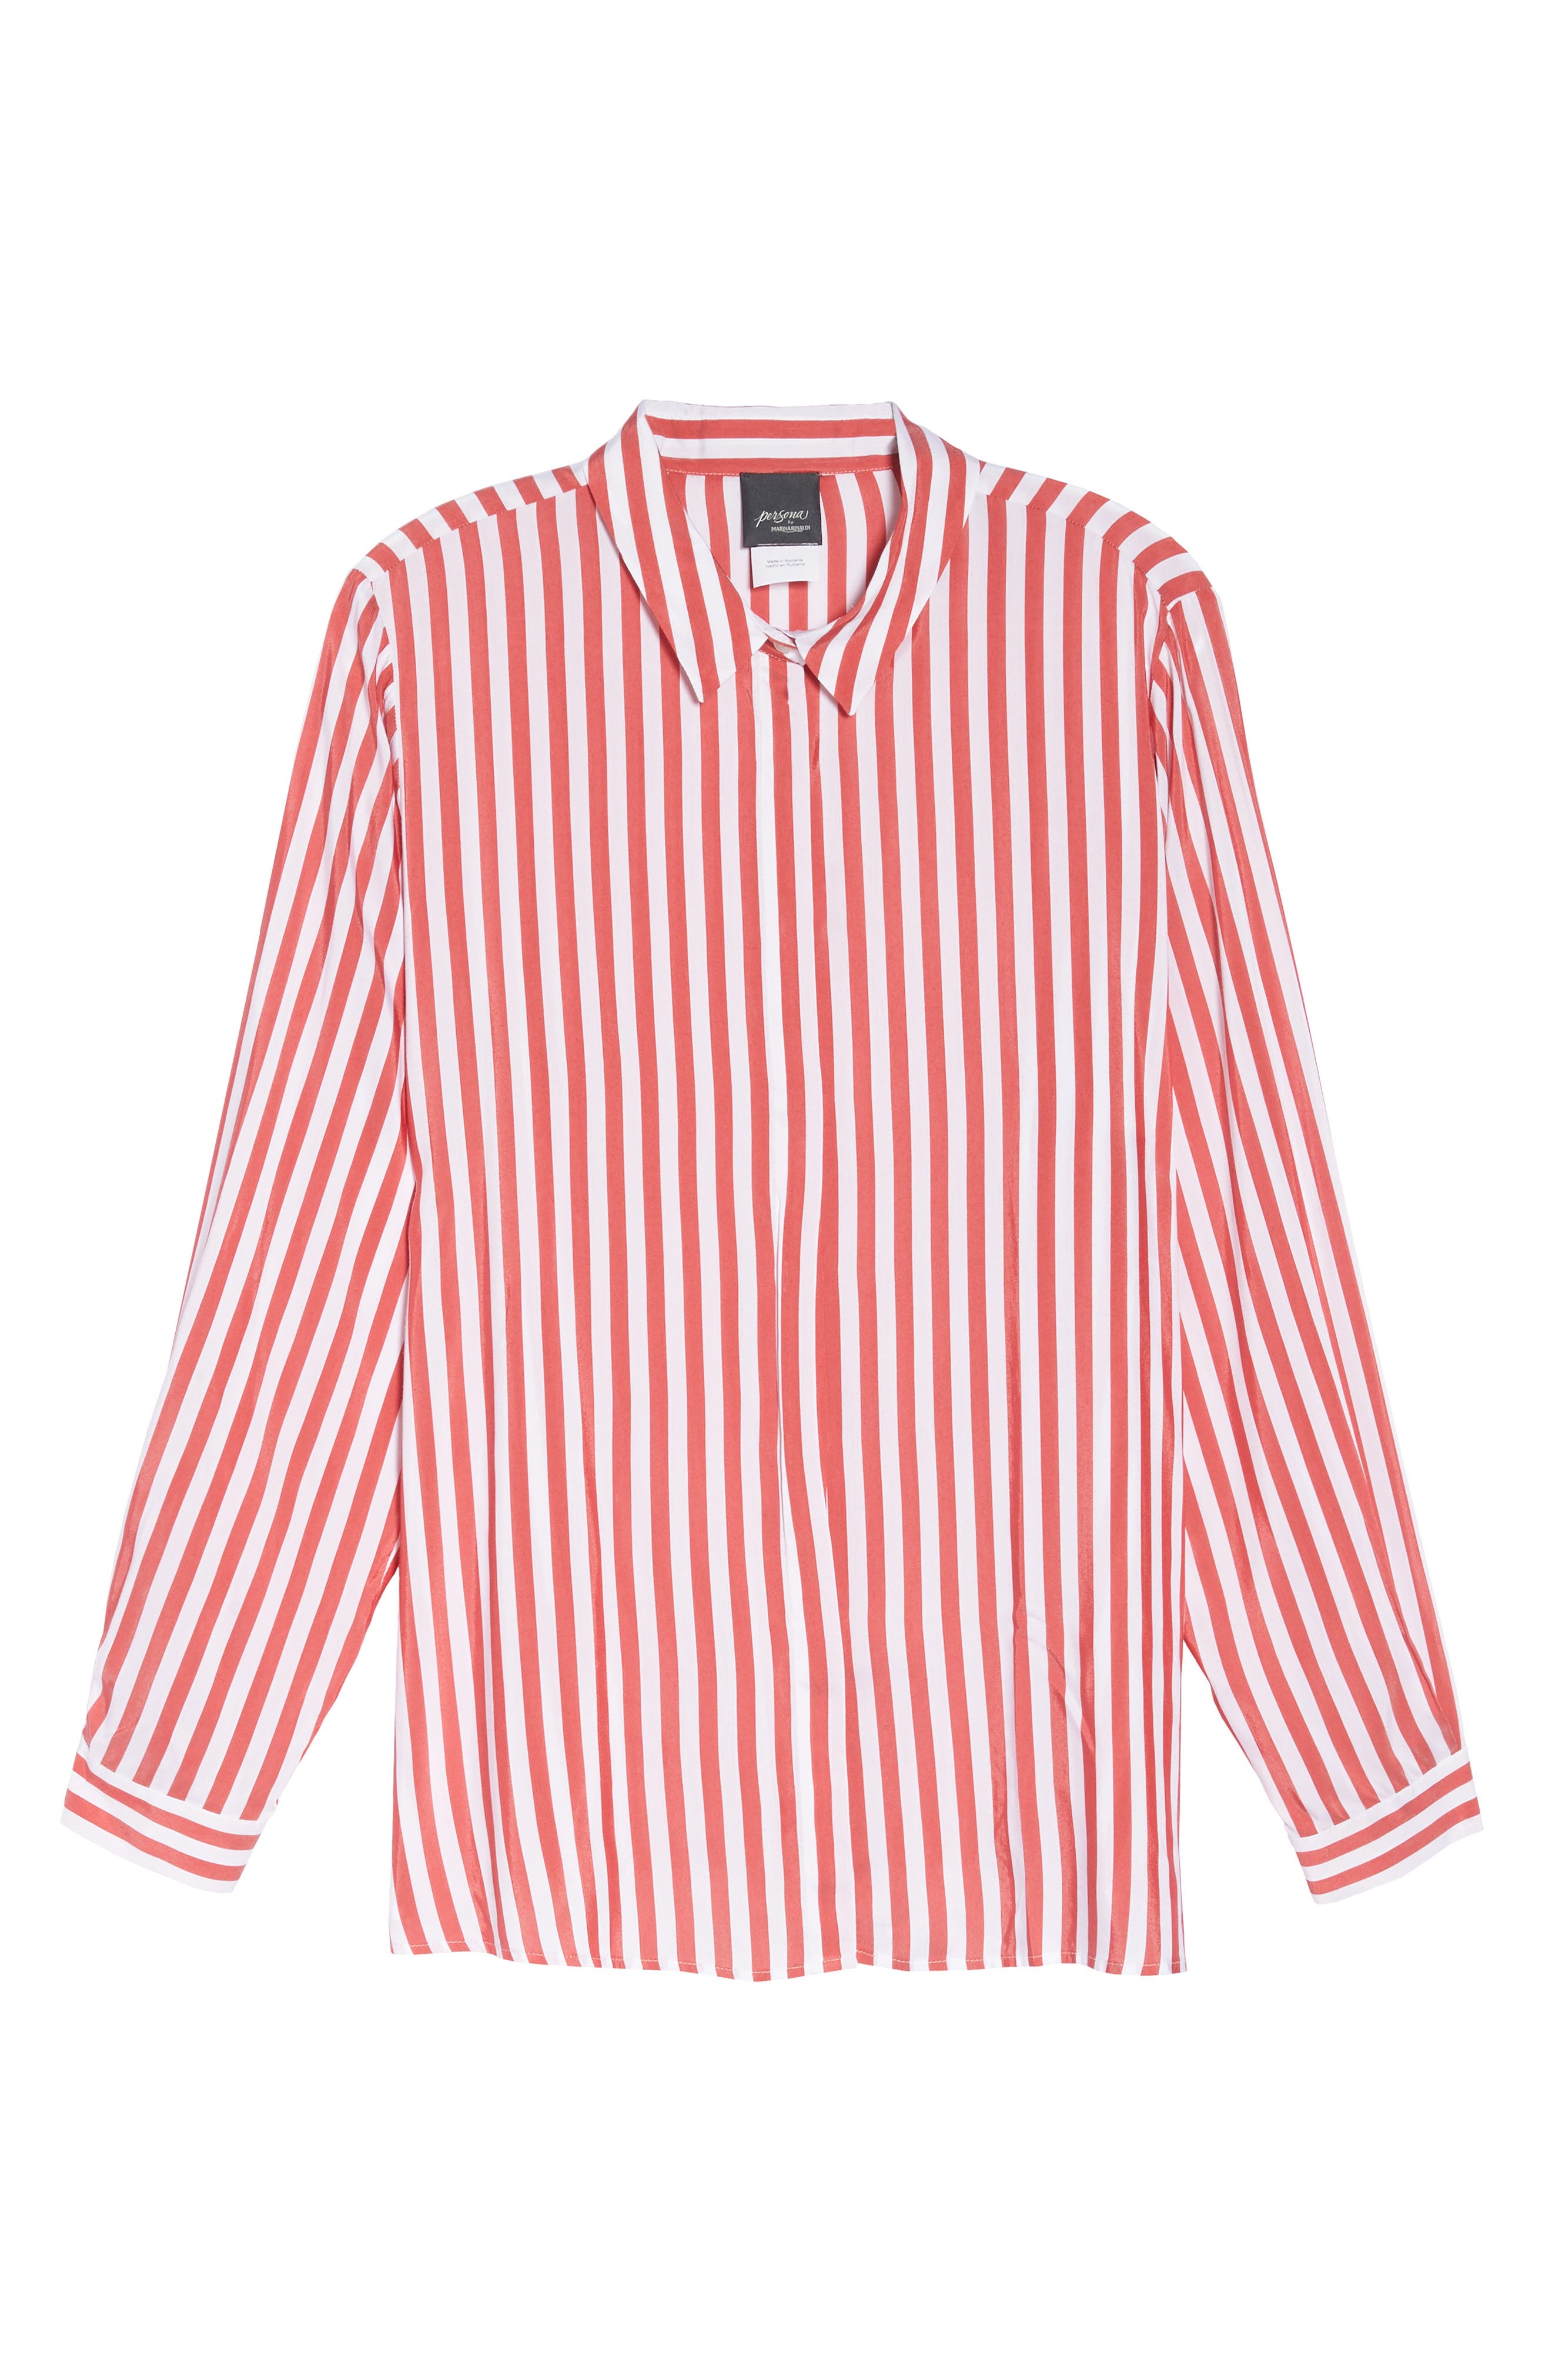 Stripe Blouse,                             Alternate thumbnail 7, color,                             Red/ White Stripe